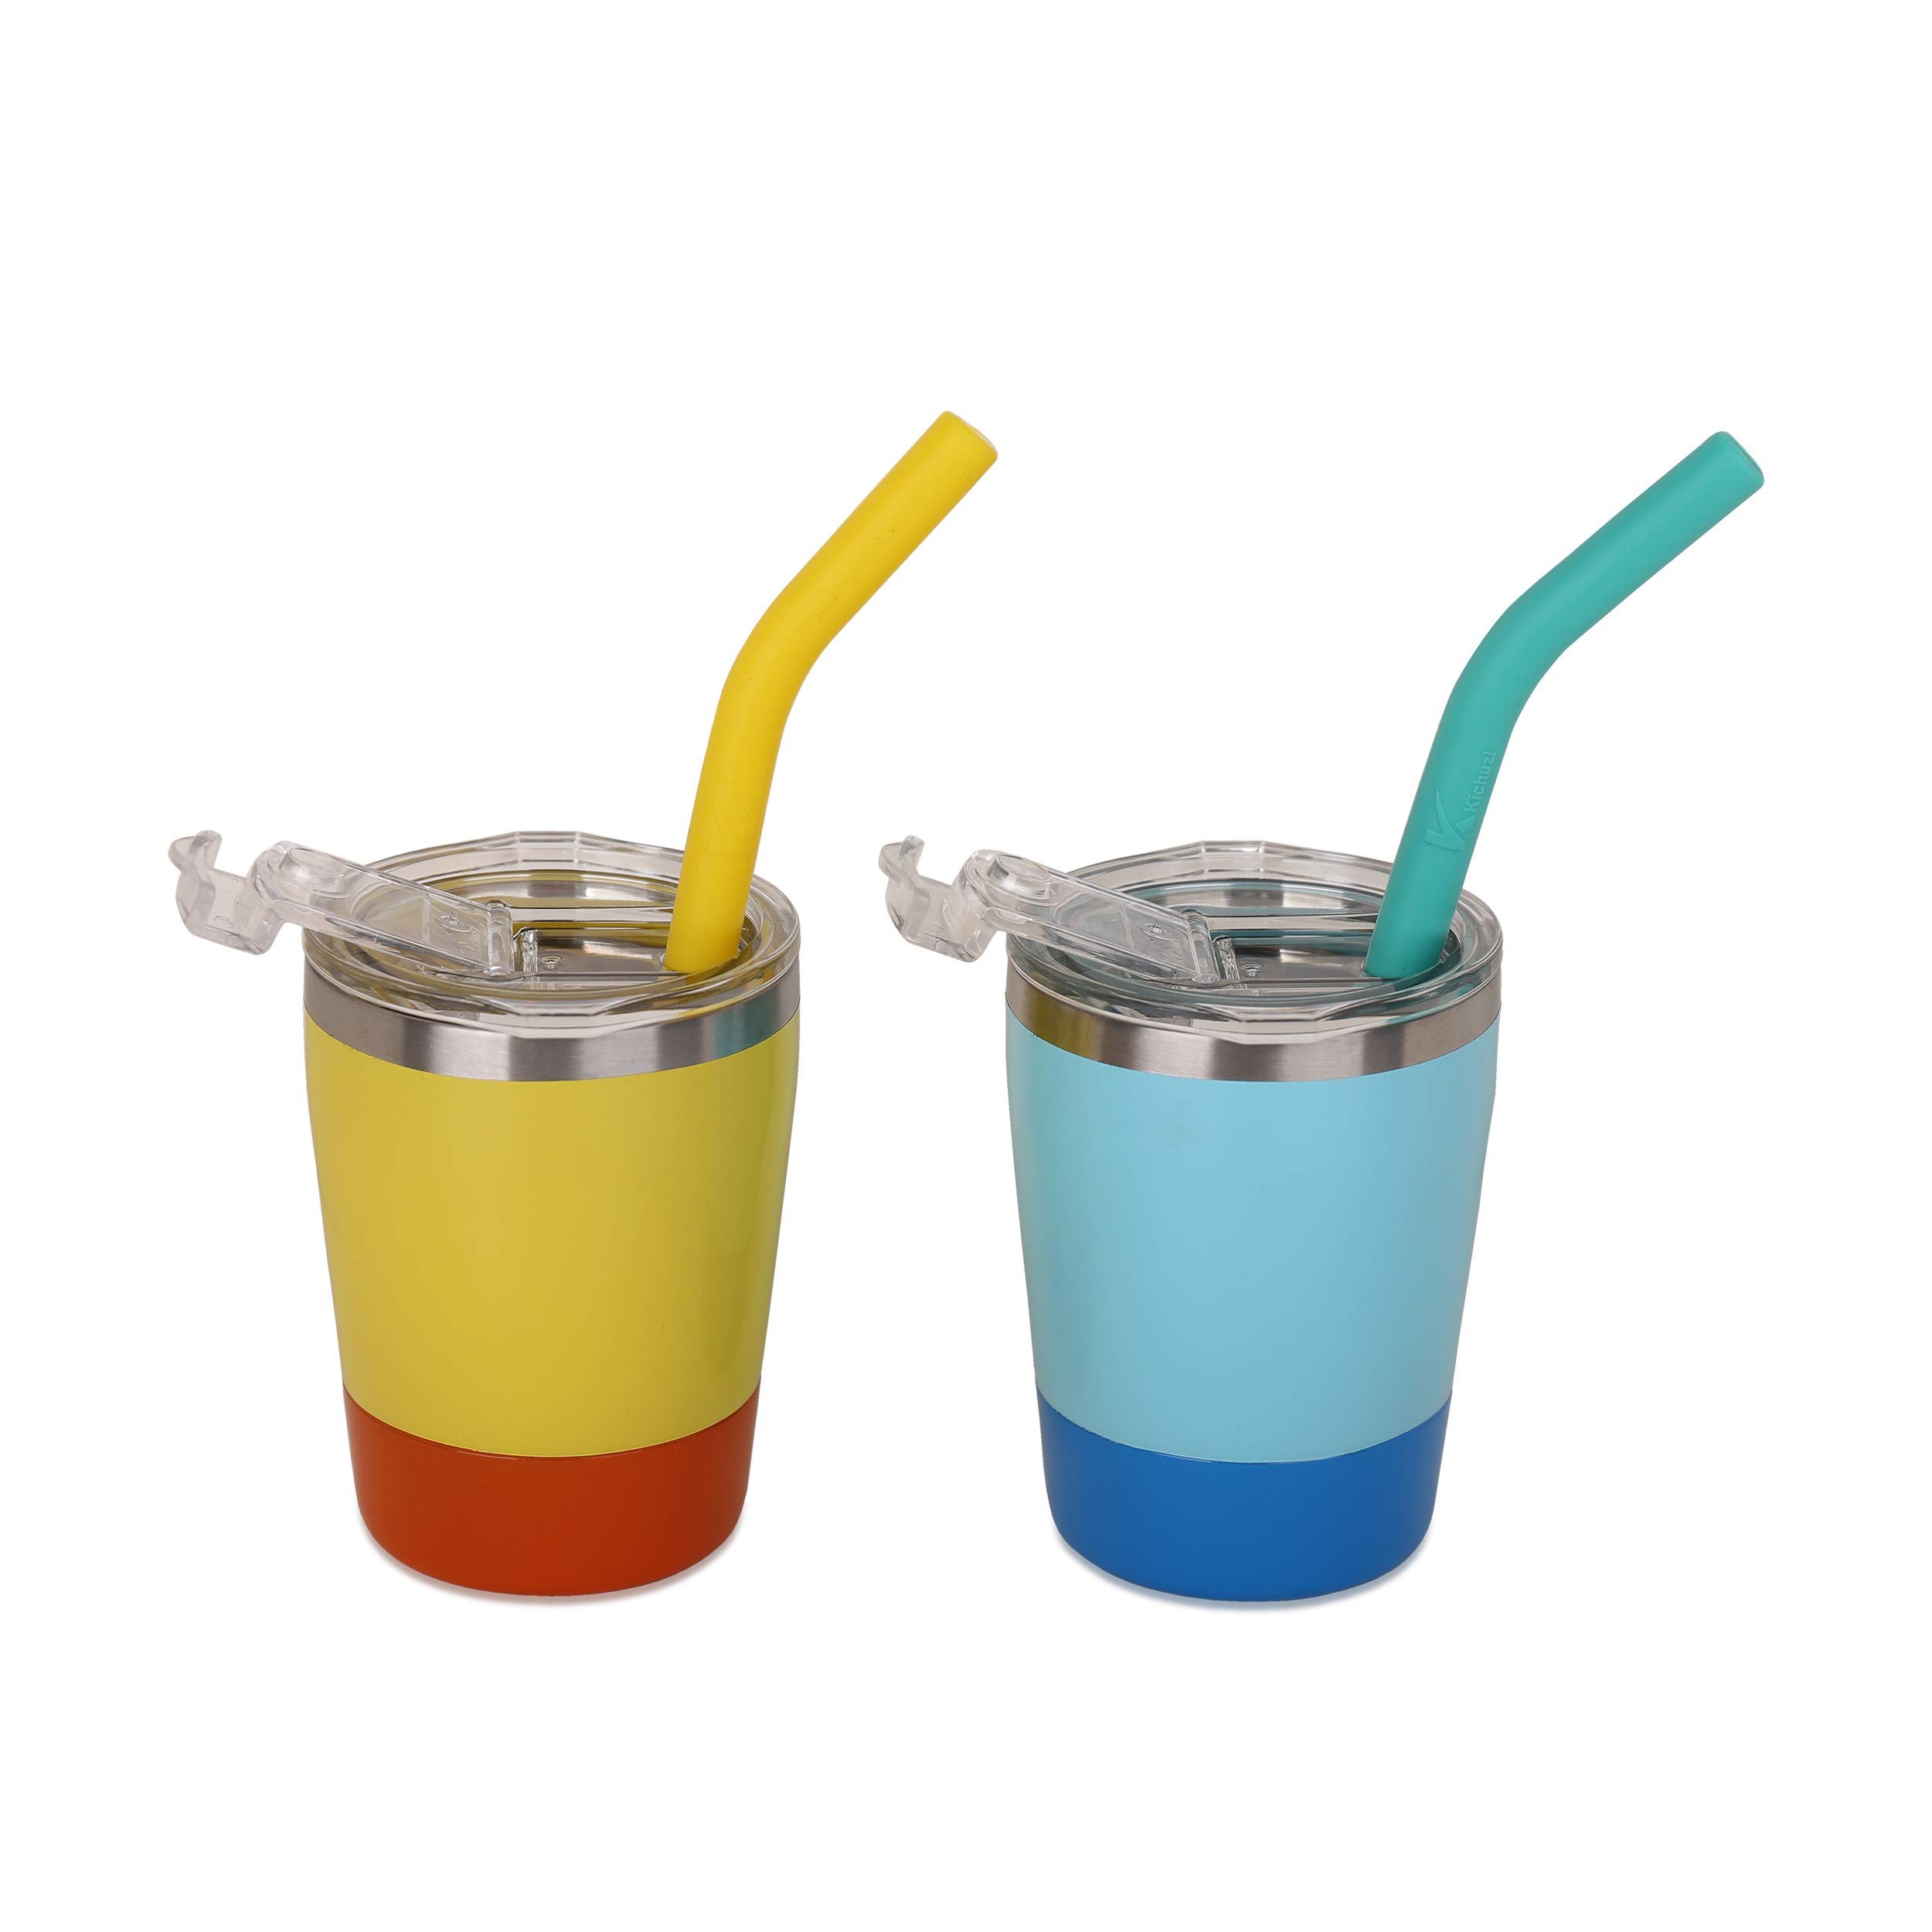 Colorful Straw Cups with Lids, Pack of 2, Kichuzl Dual Colors Toddler Cup Set Stainless Steel Mugs with Lids and Straws, Light Blue/Bright Yellow by Kichuzl